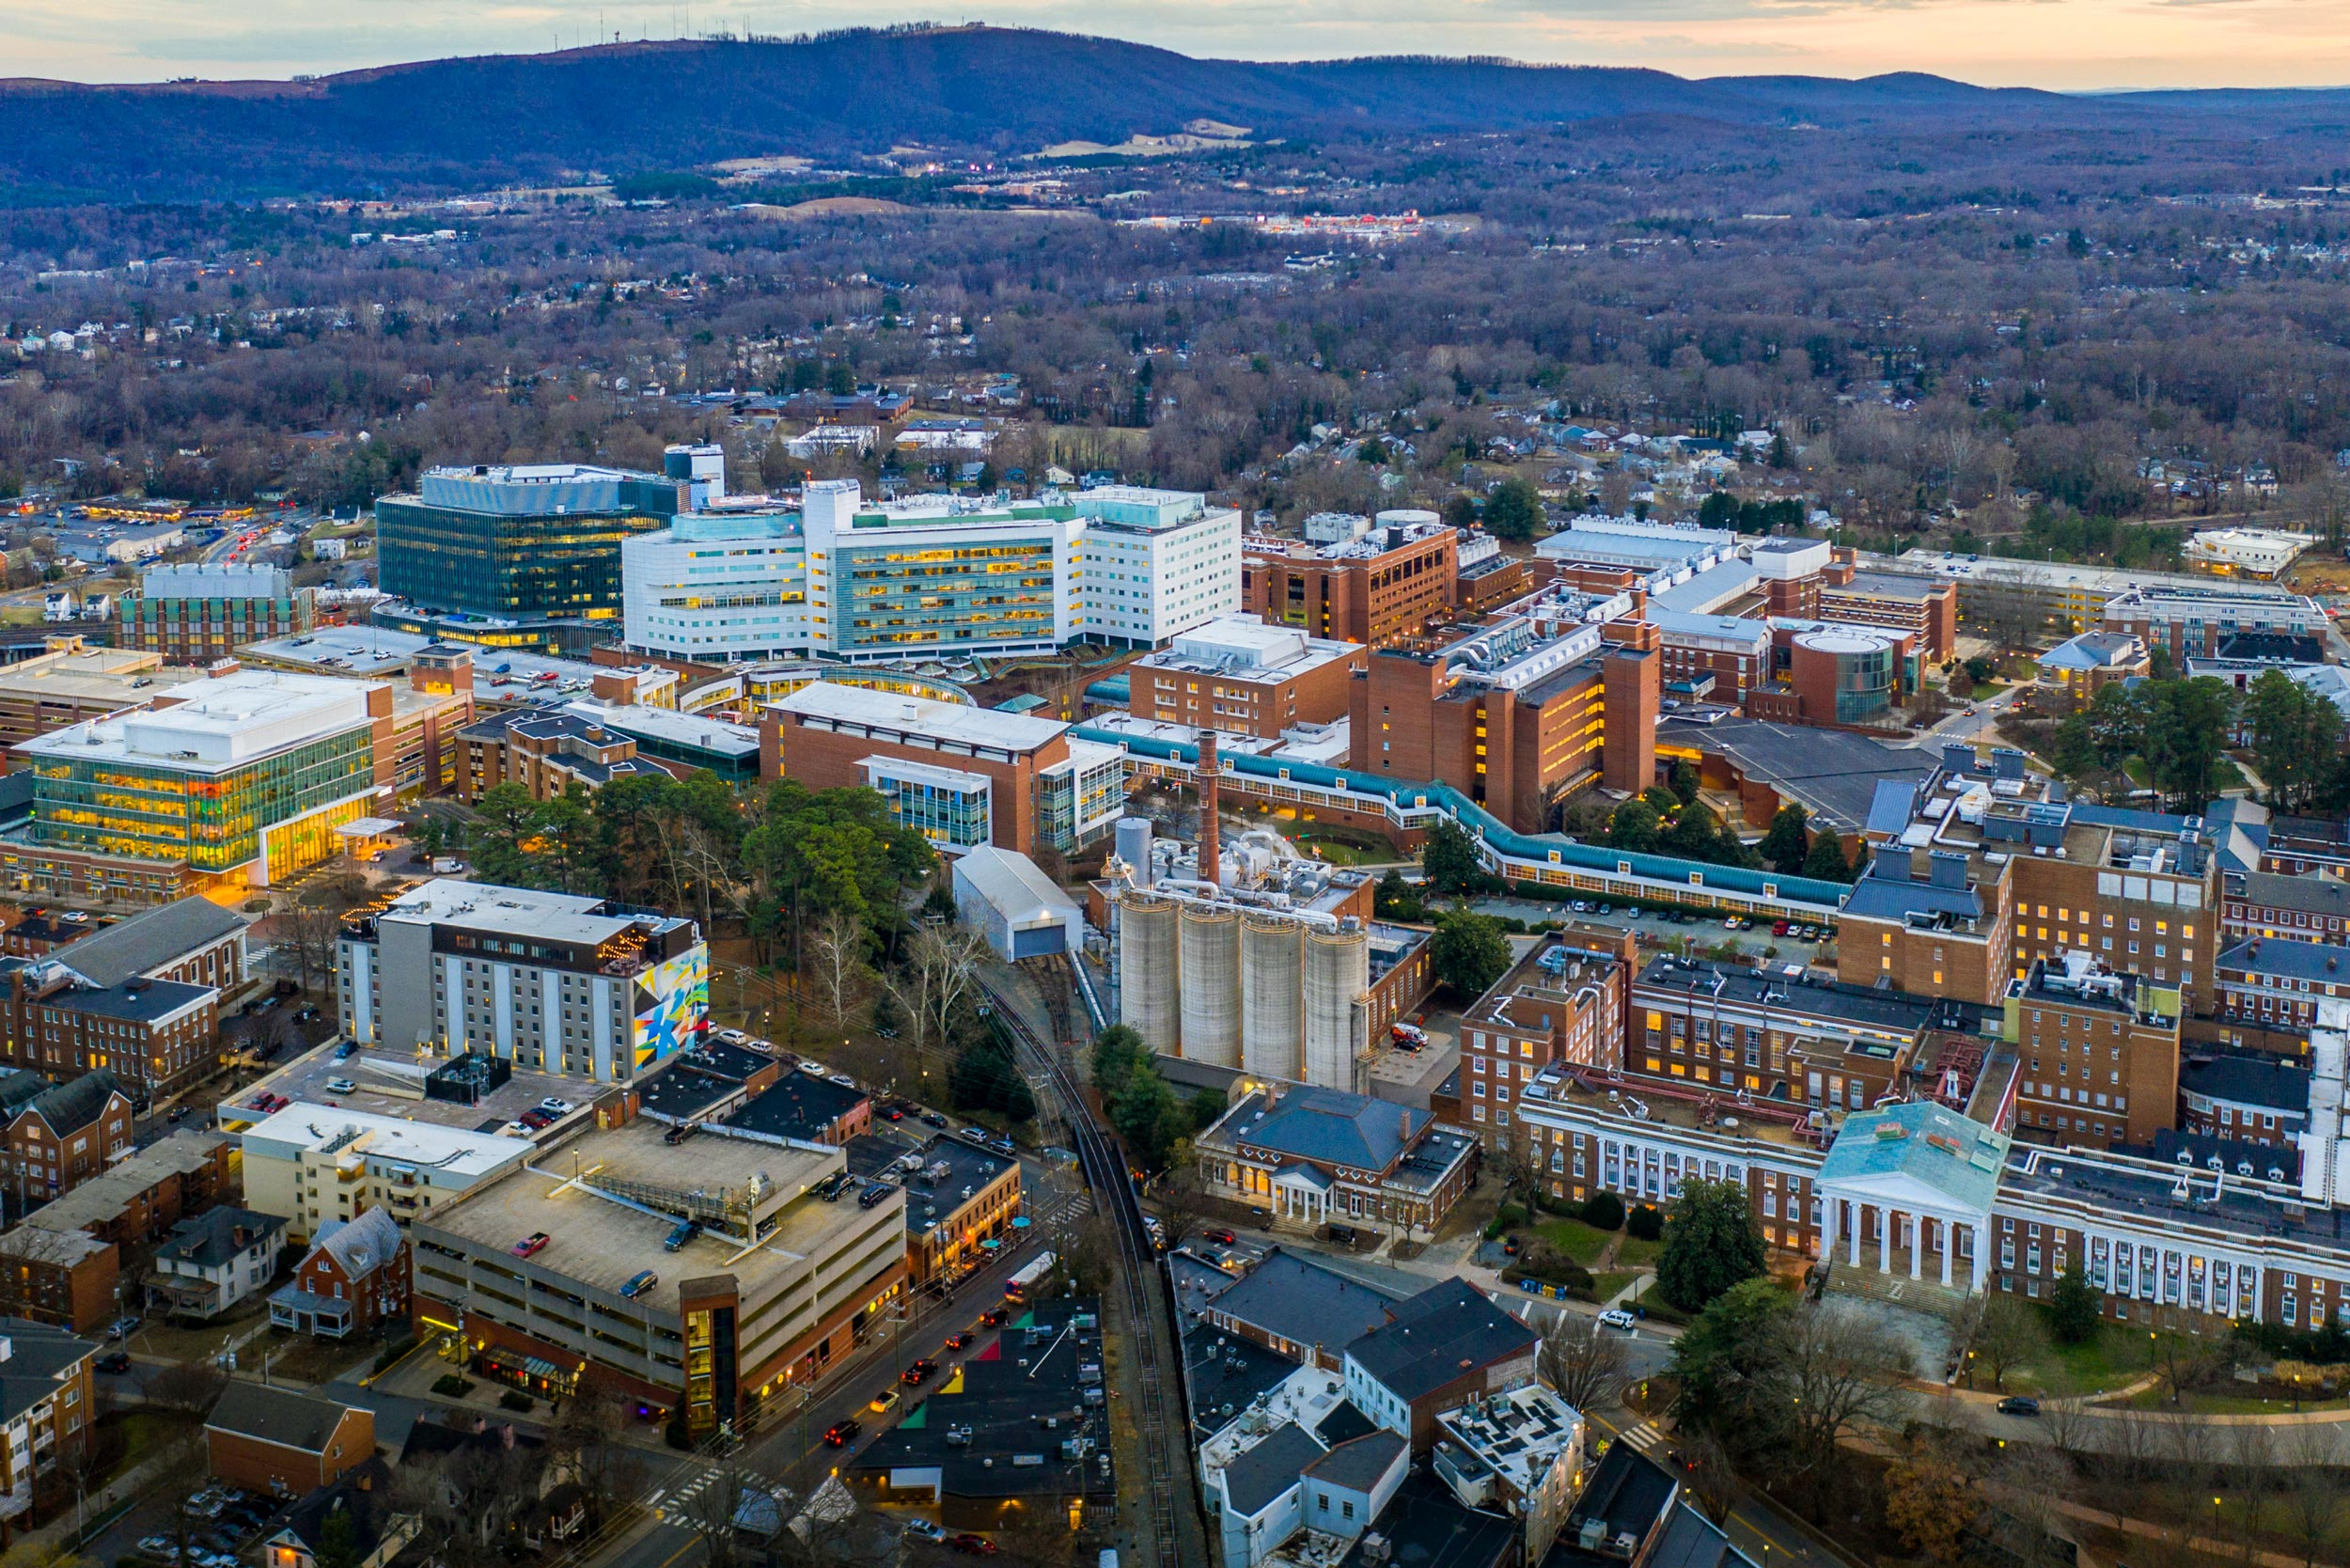 UVA Earns 'A' From National Hospital Safety Rating Group